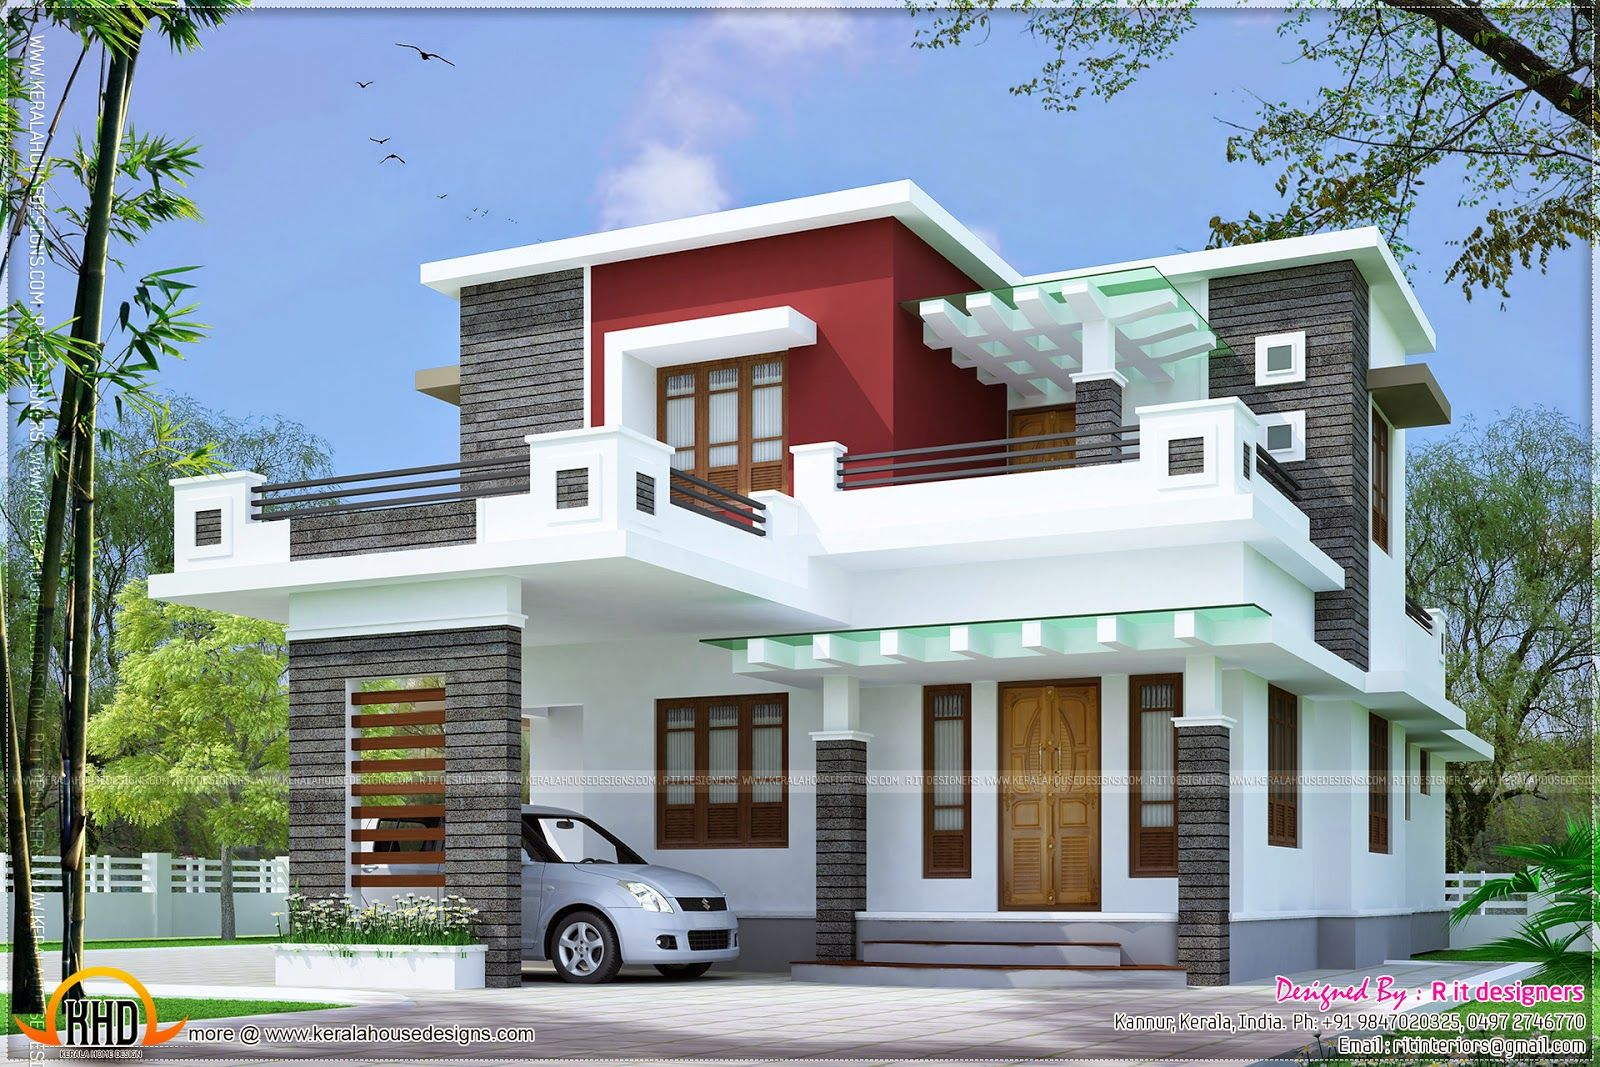 Modern Double Storey House Plans with Flat Roof